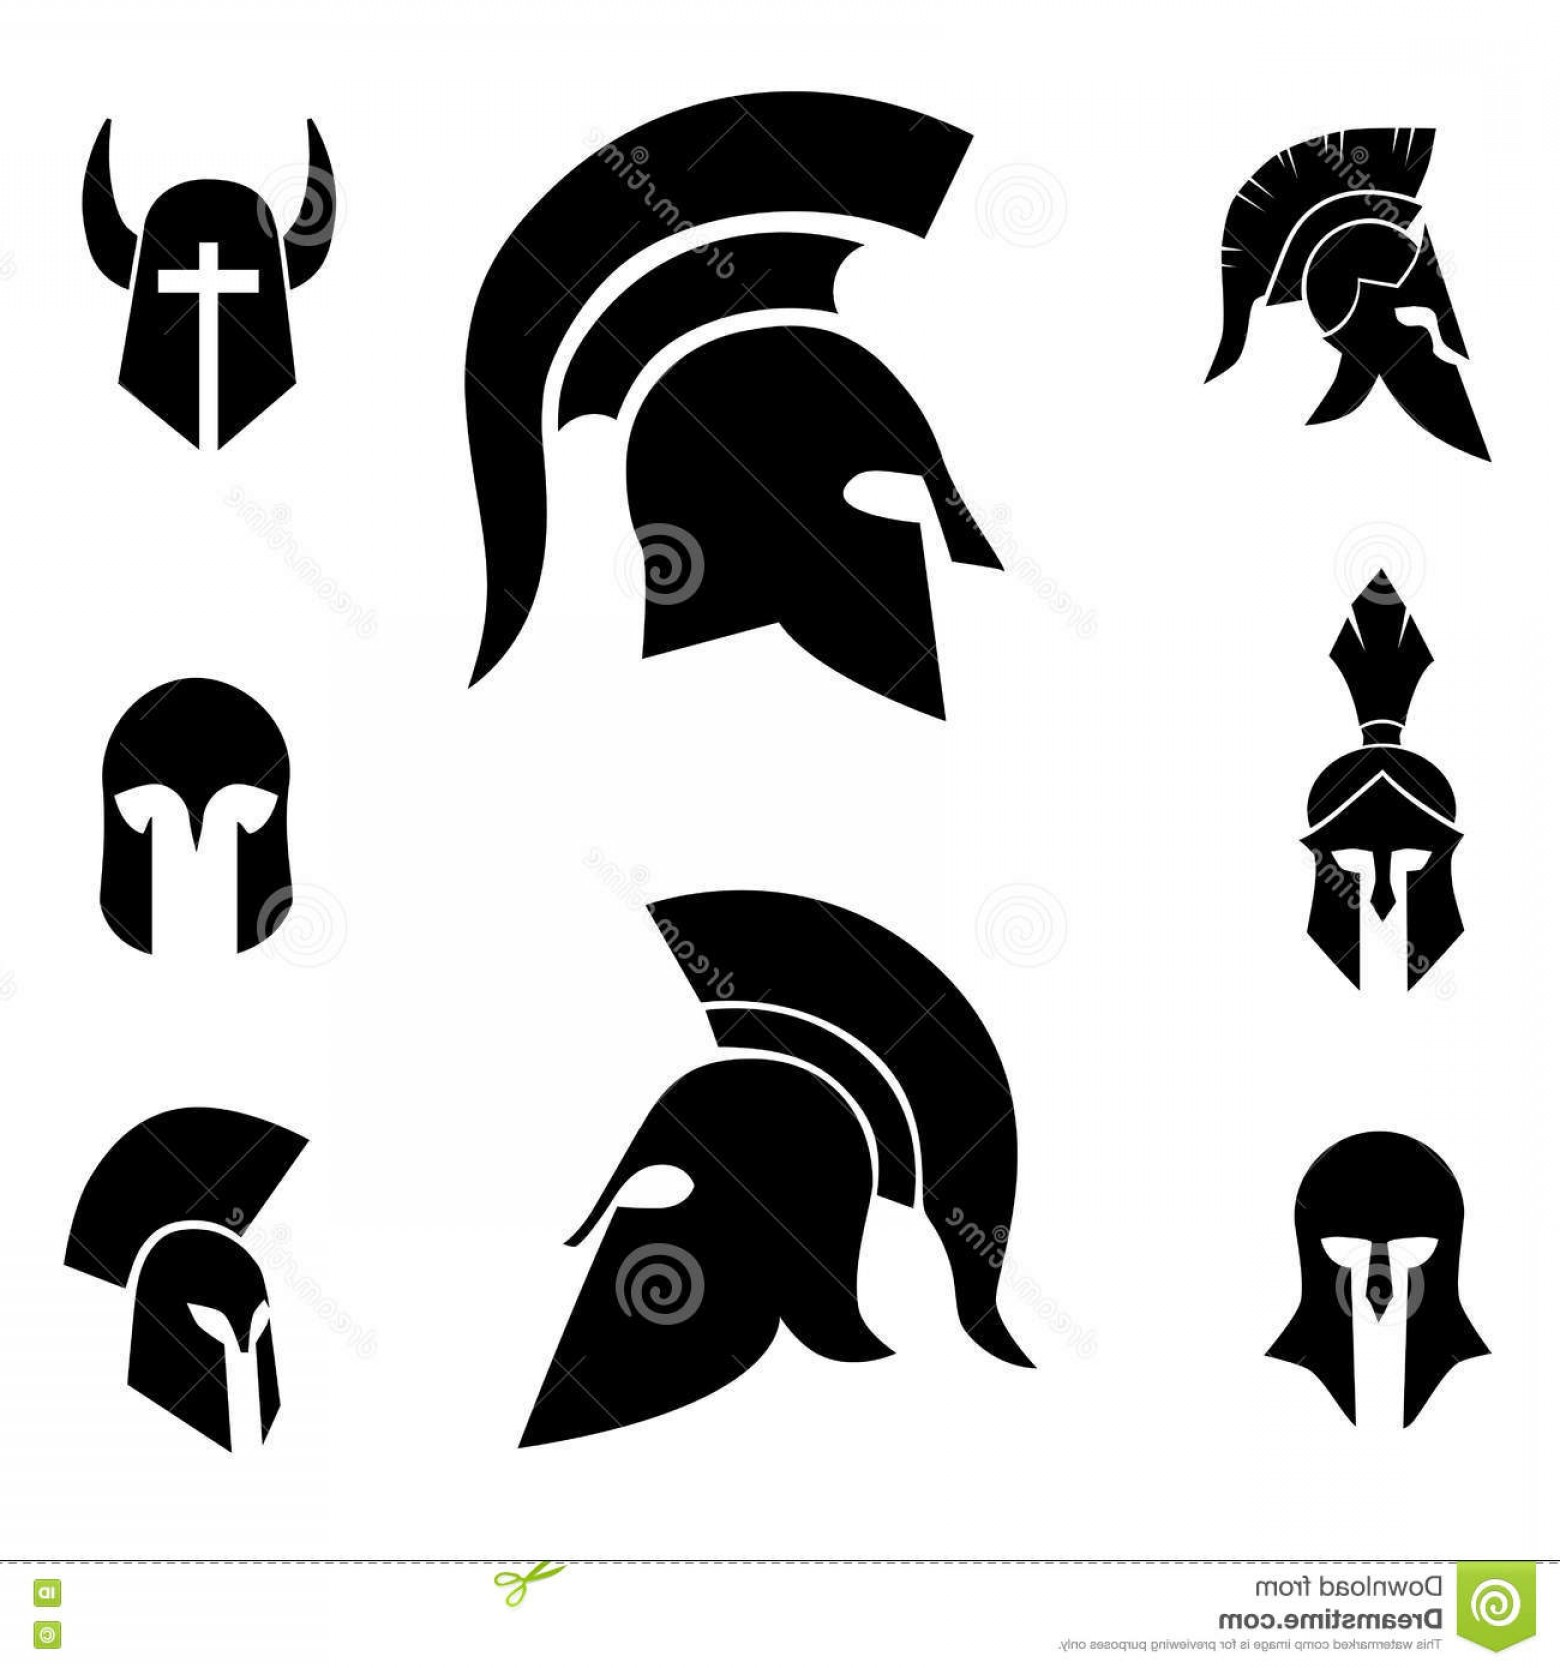 Warrior Vector Art: Stock Illustration Ancient Spartan Warrior Soldier Helmet Vector Art Medieval Soldiers Knights Helmets Image